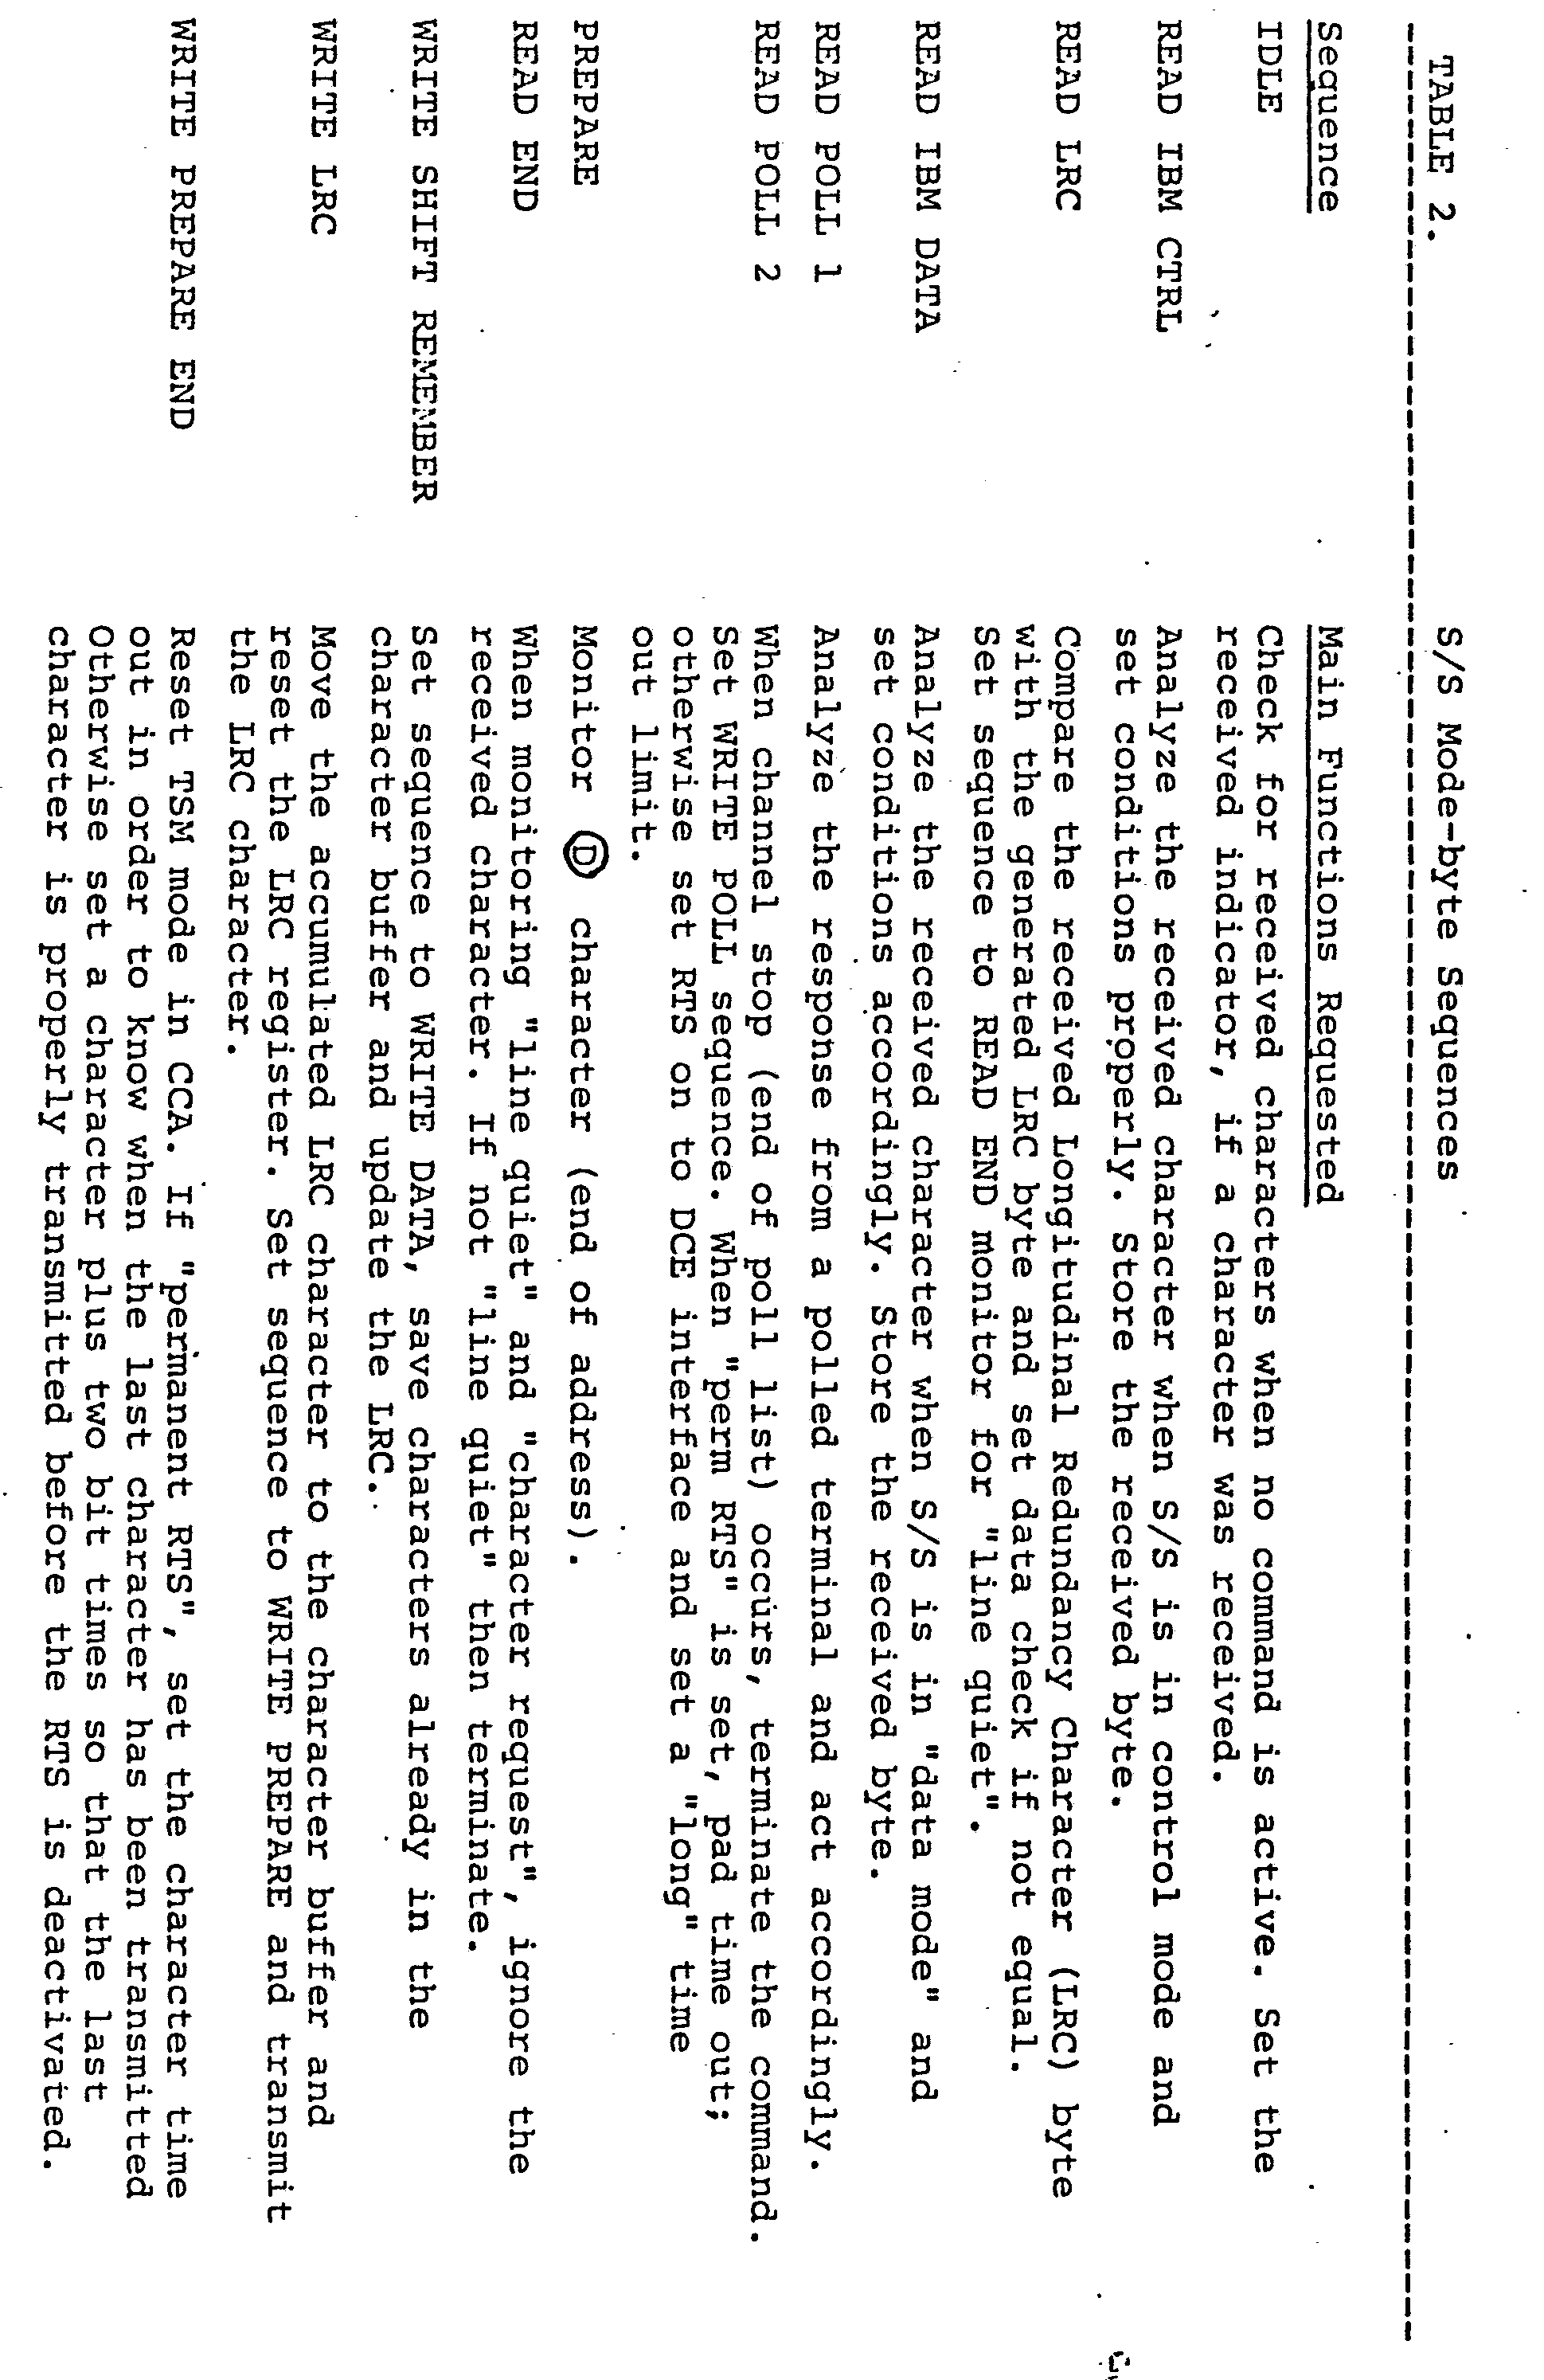 EP0013739A1 - Communication controller in a data processing system